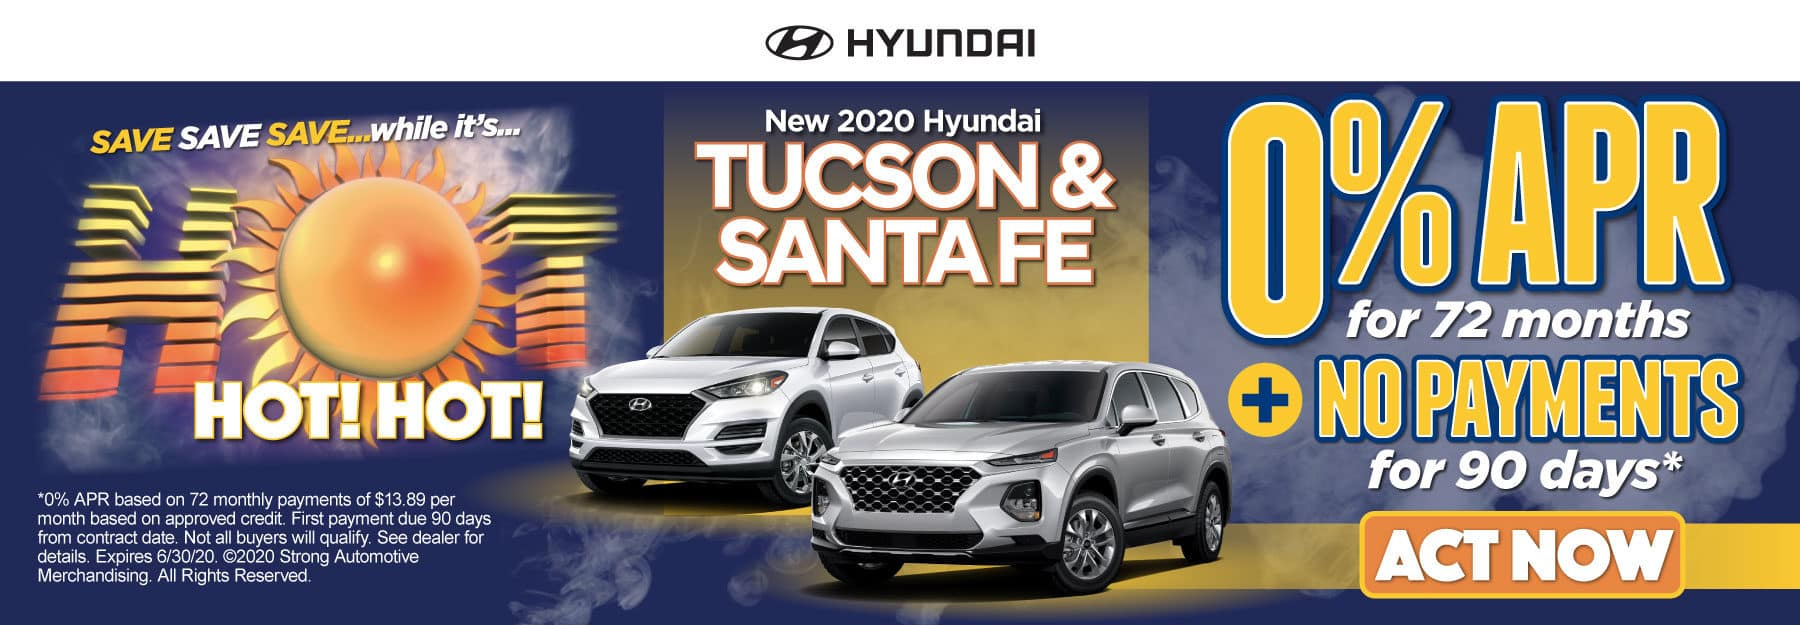 New 2020 Hyundai Tucson & Santa Fe - 0% APR for 72 months + No payments for 90 days - Click to View Inventory